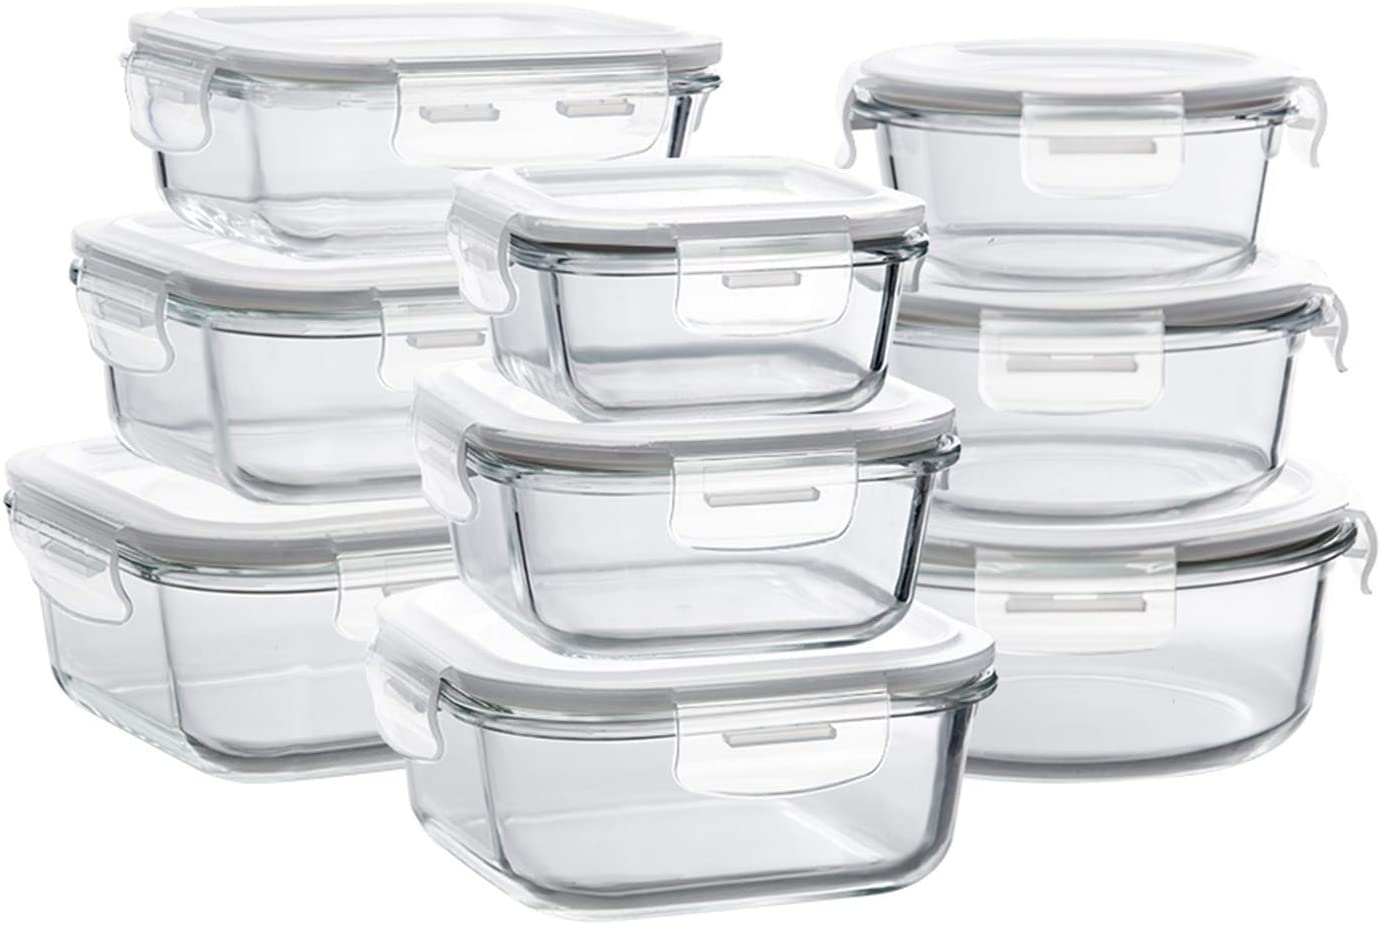 How To Keep Food Fresh - Glass Storage Containers